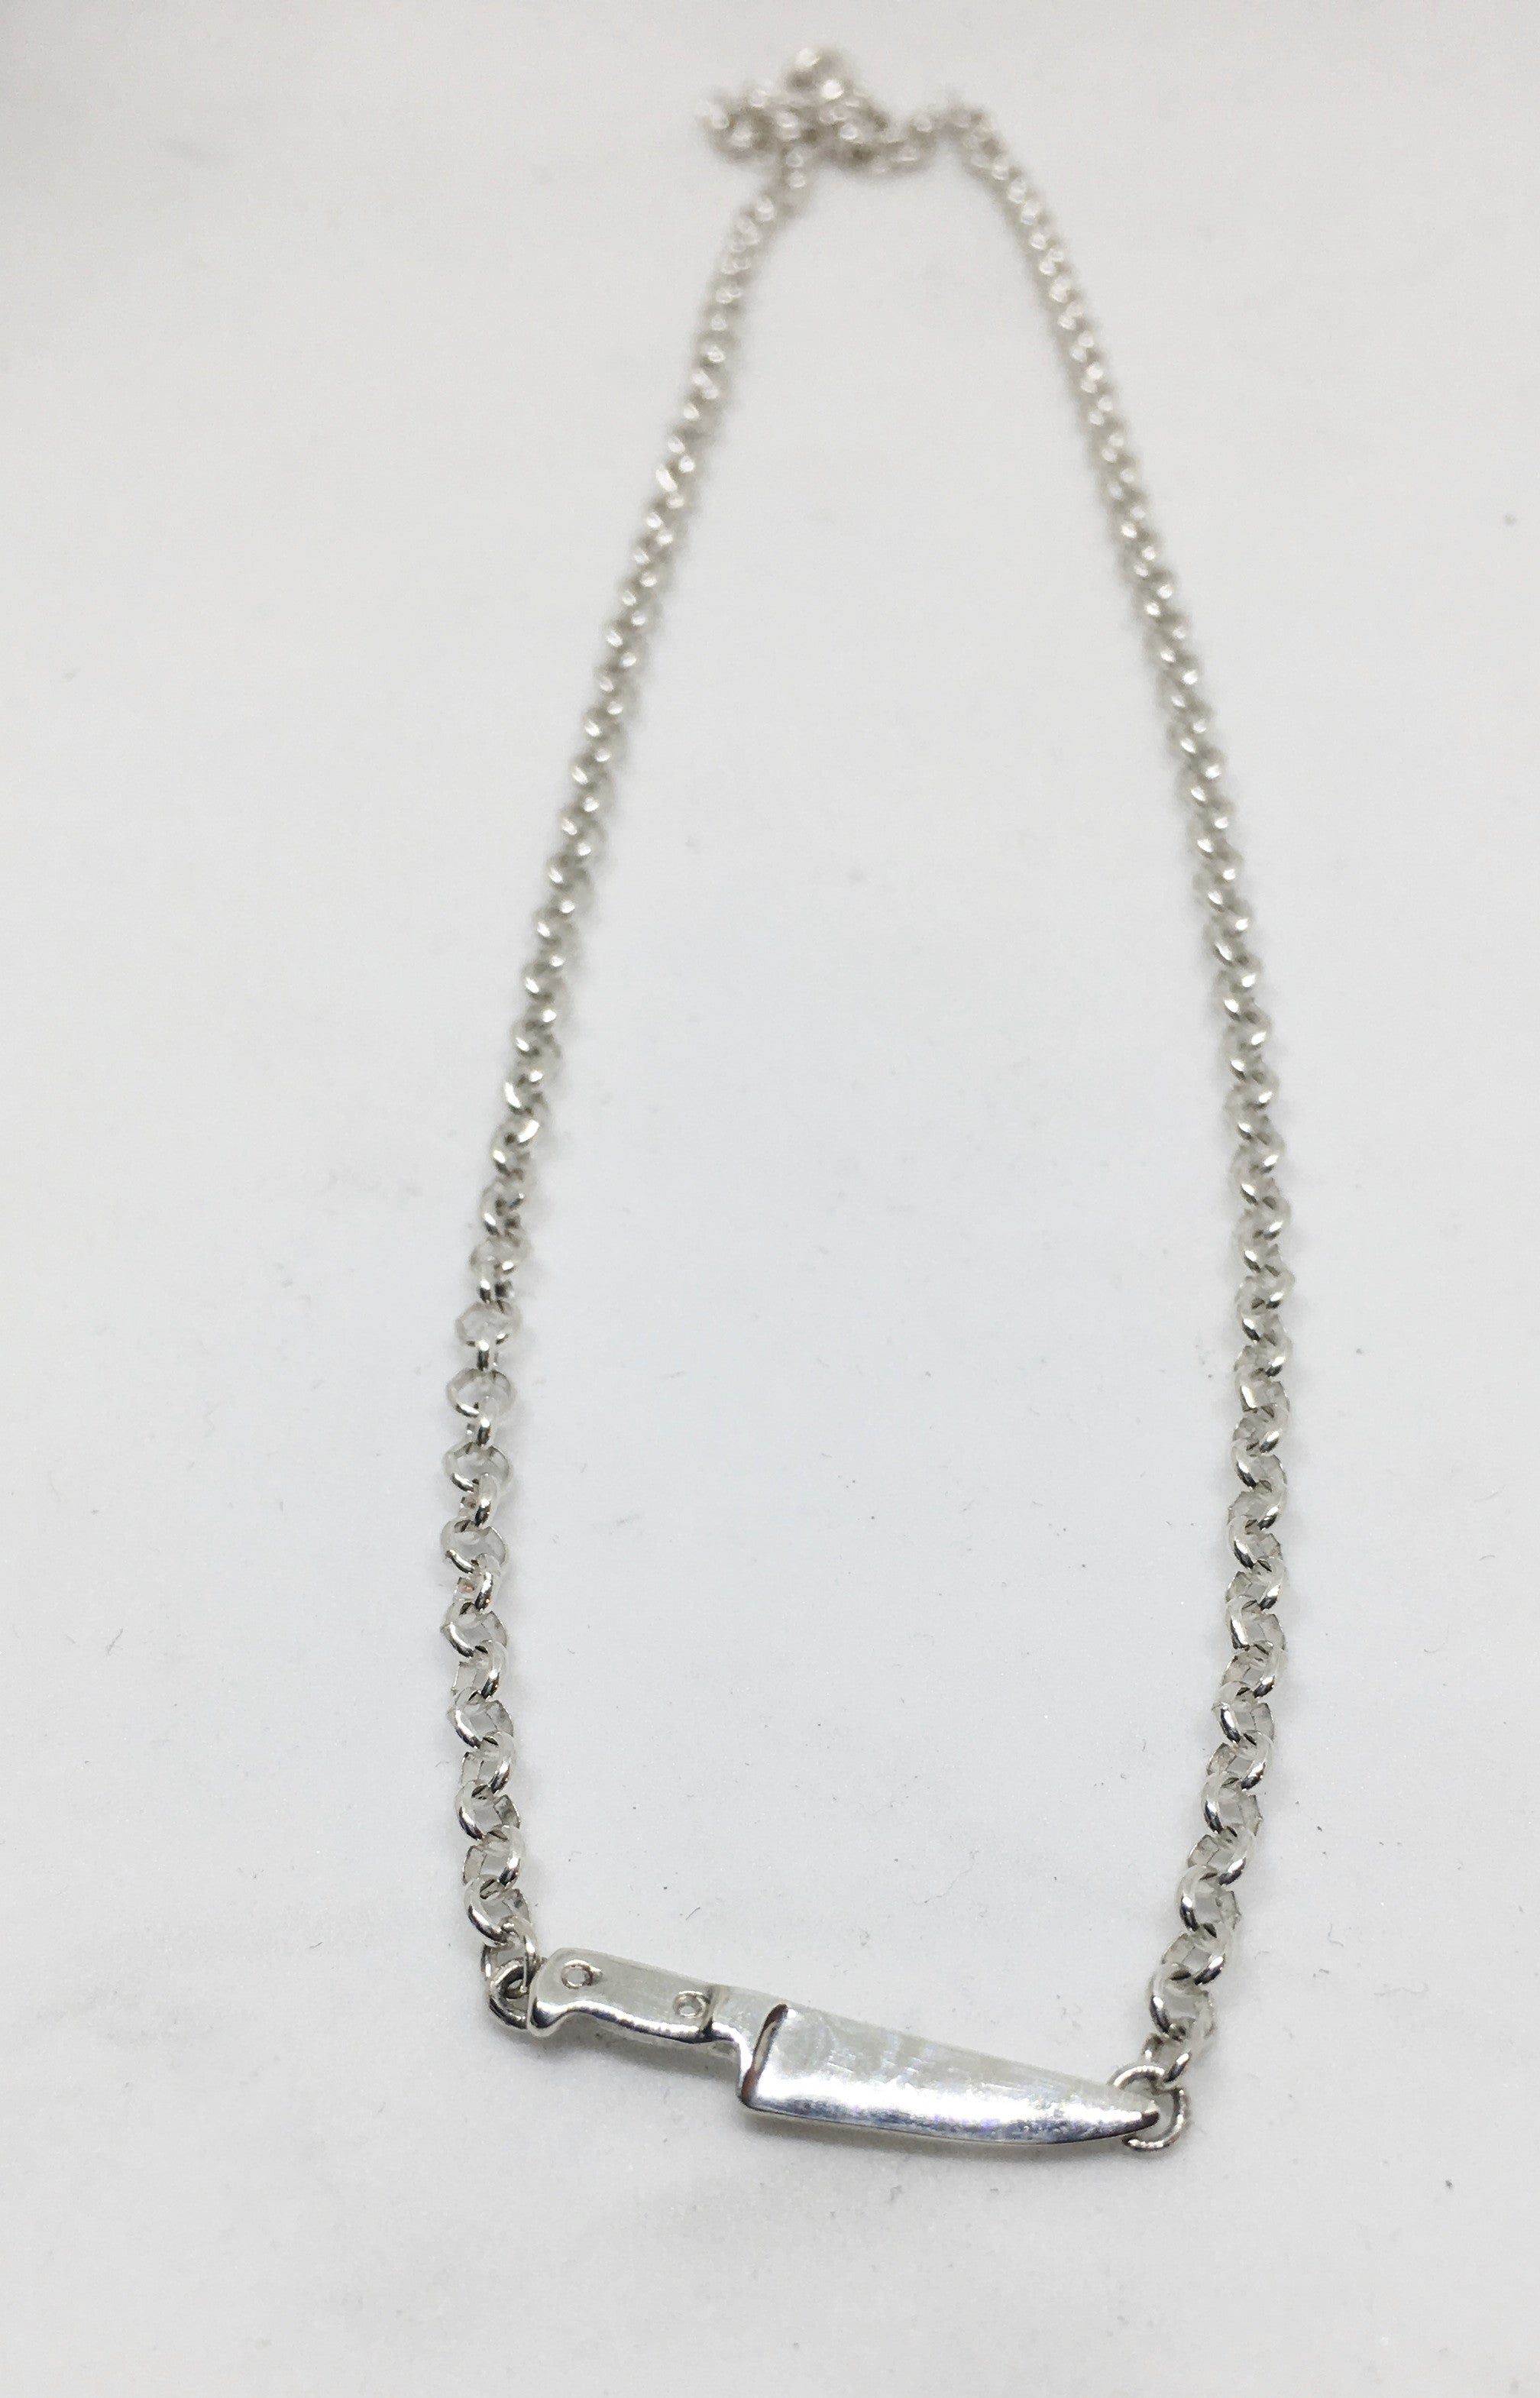 Chef Knife Chain Necklace in Sterling Silver